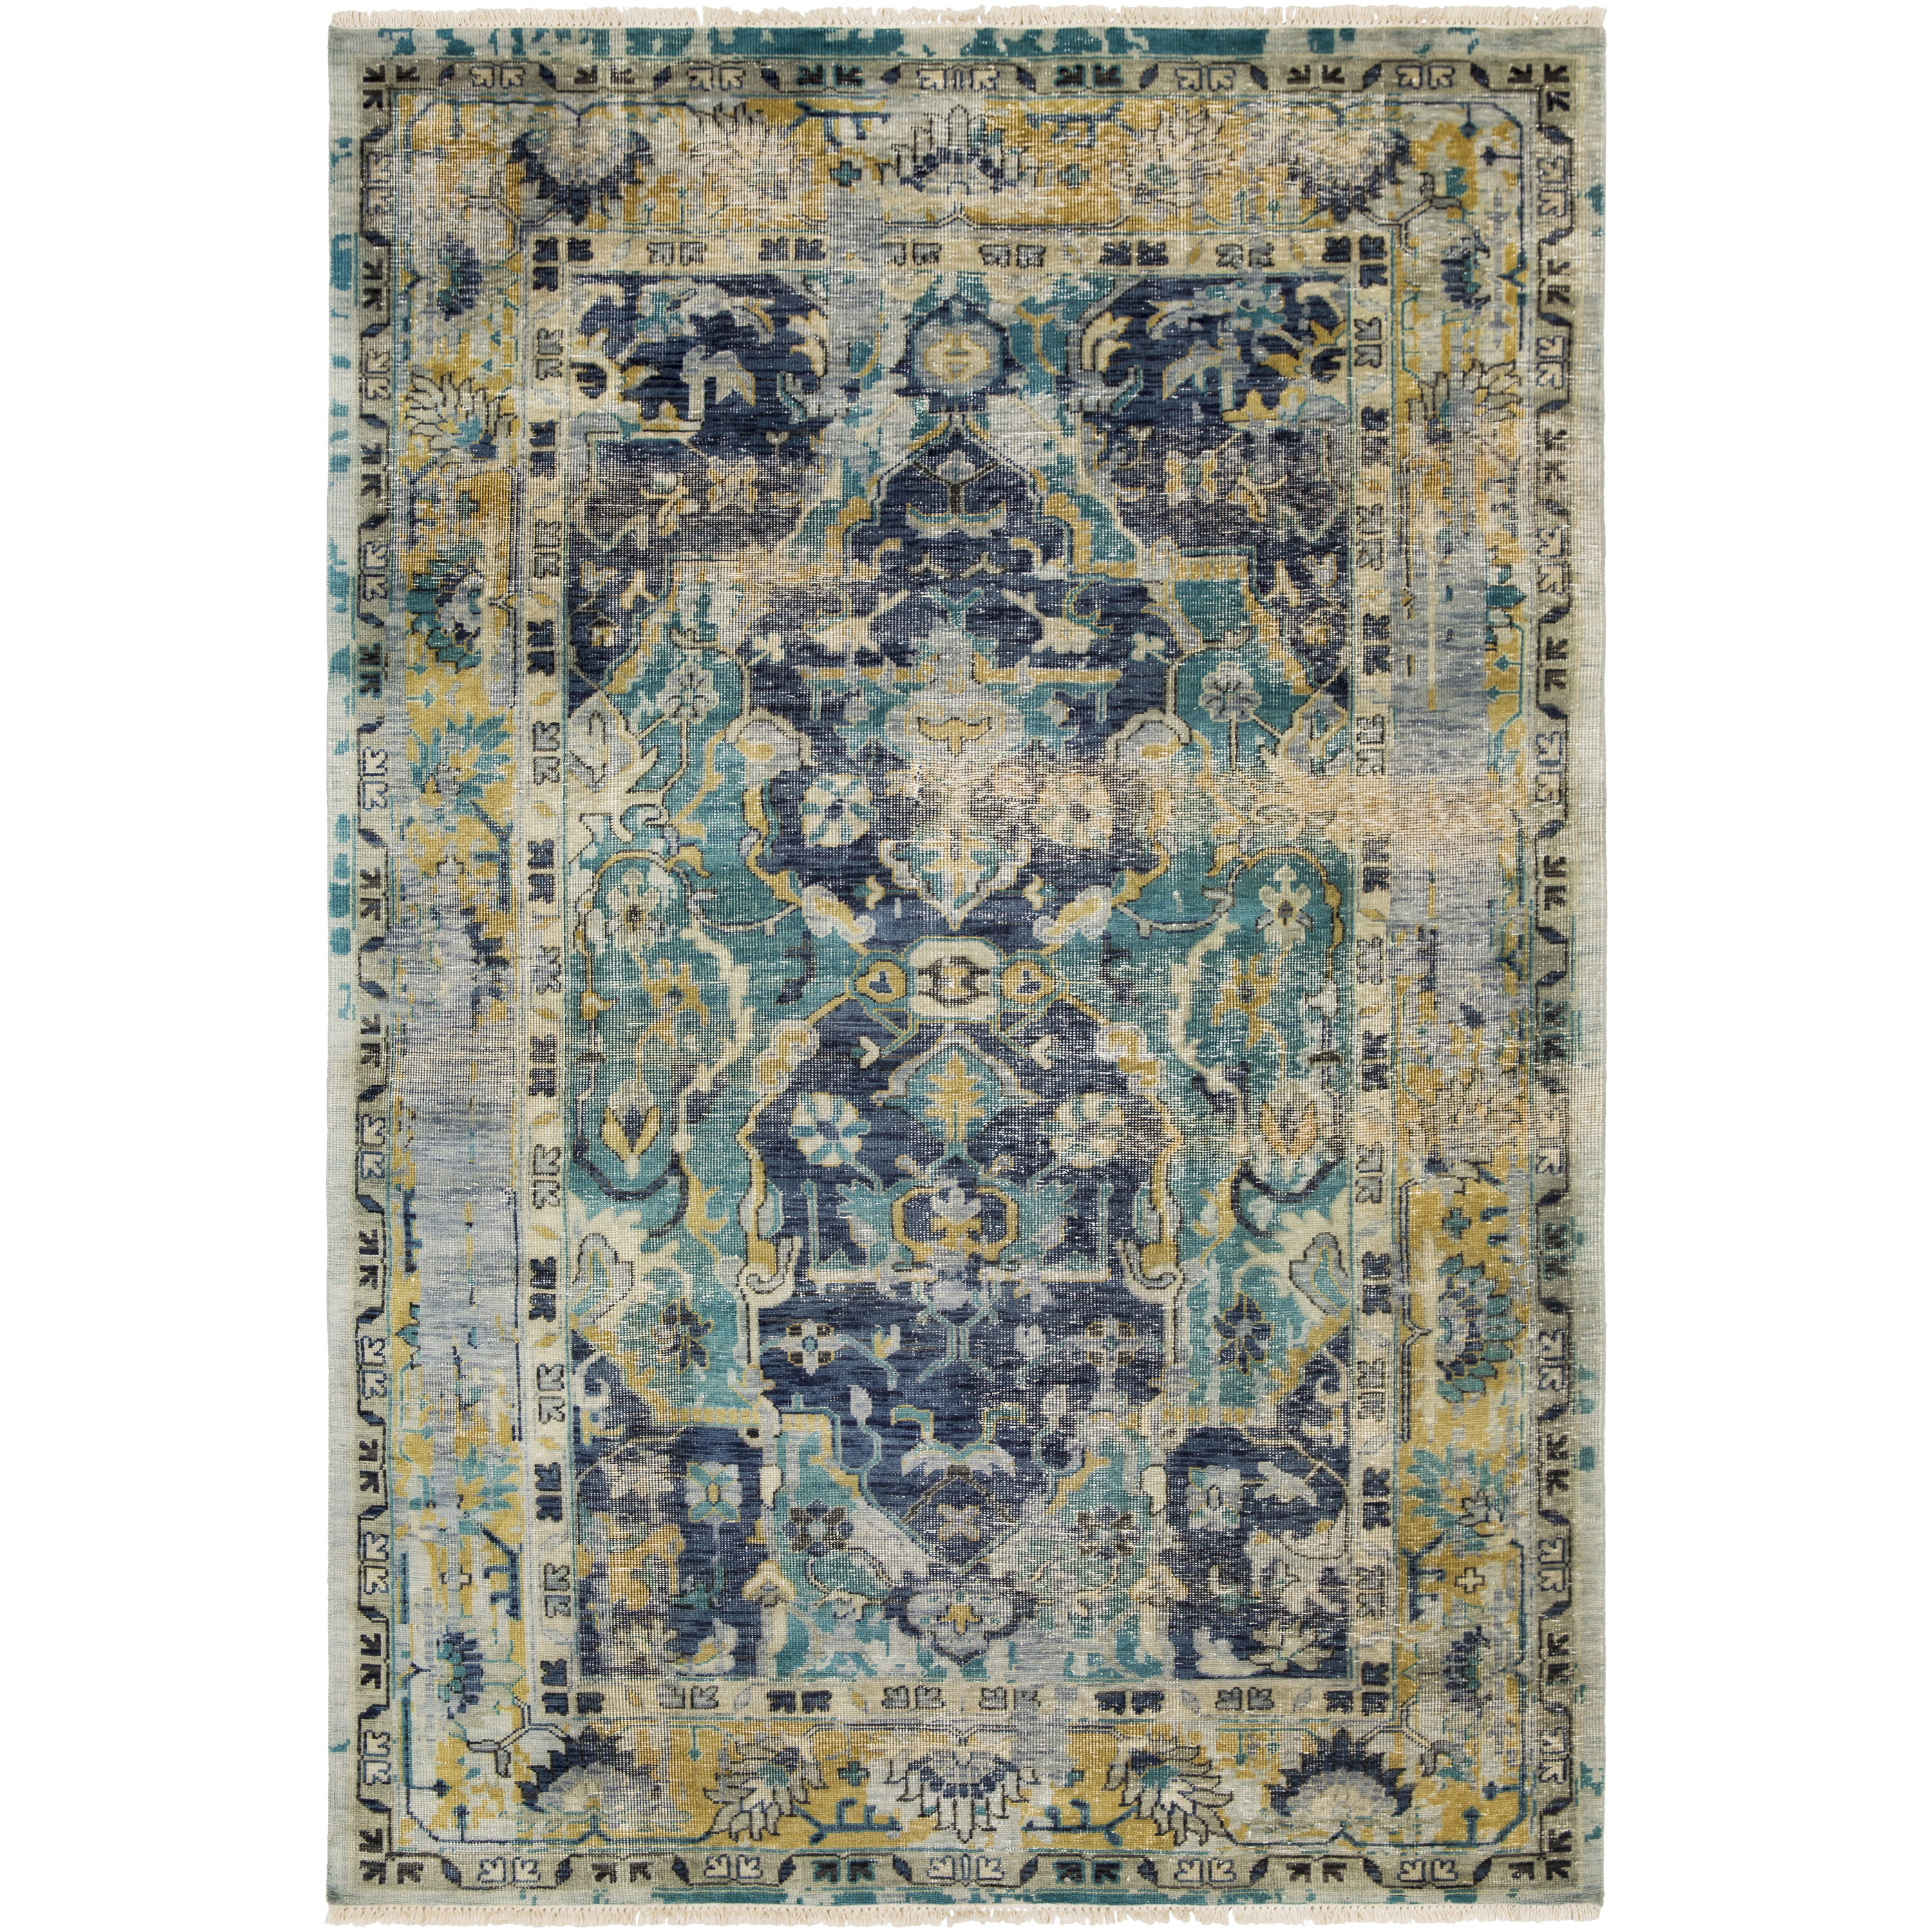 Festival Hand Knotted Navy Teal Area Rug